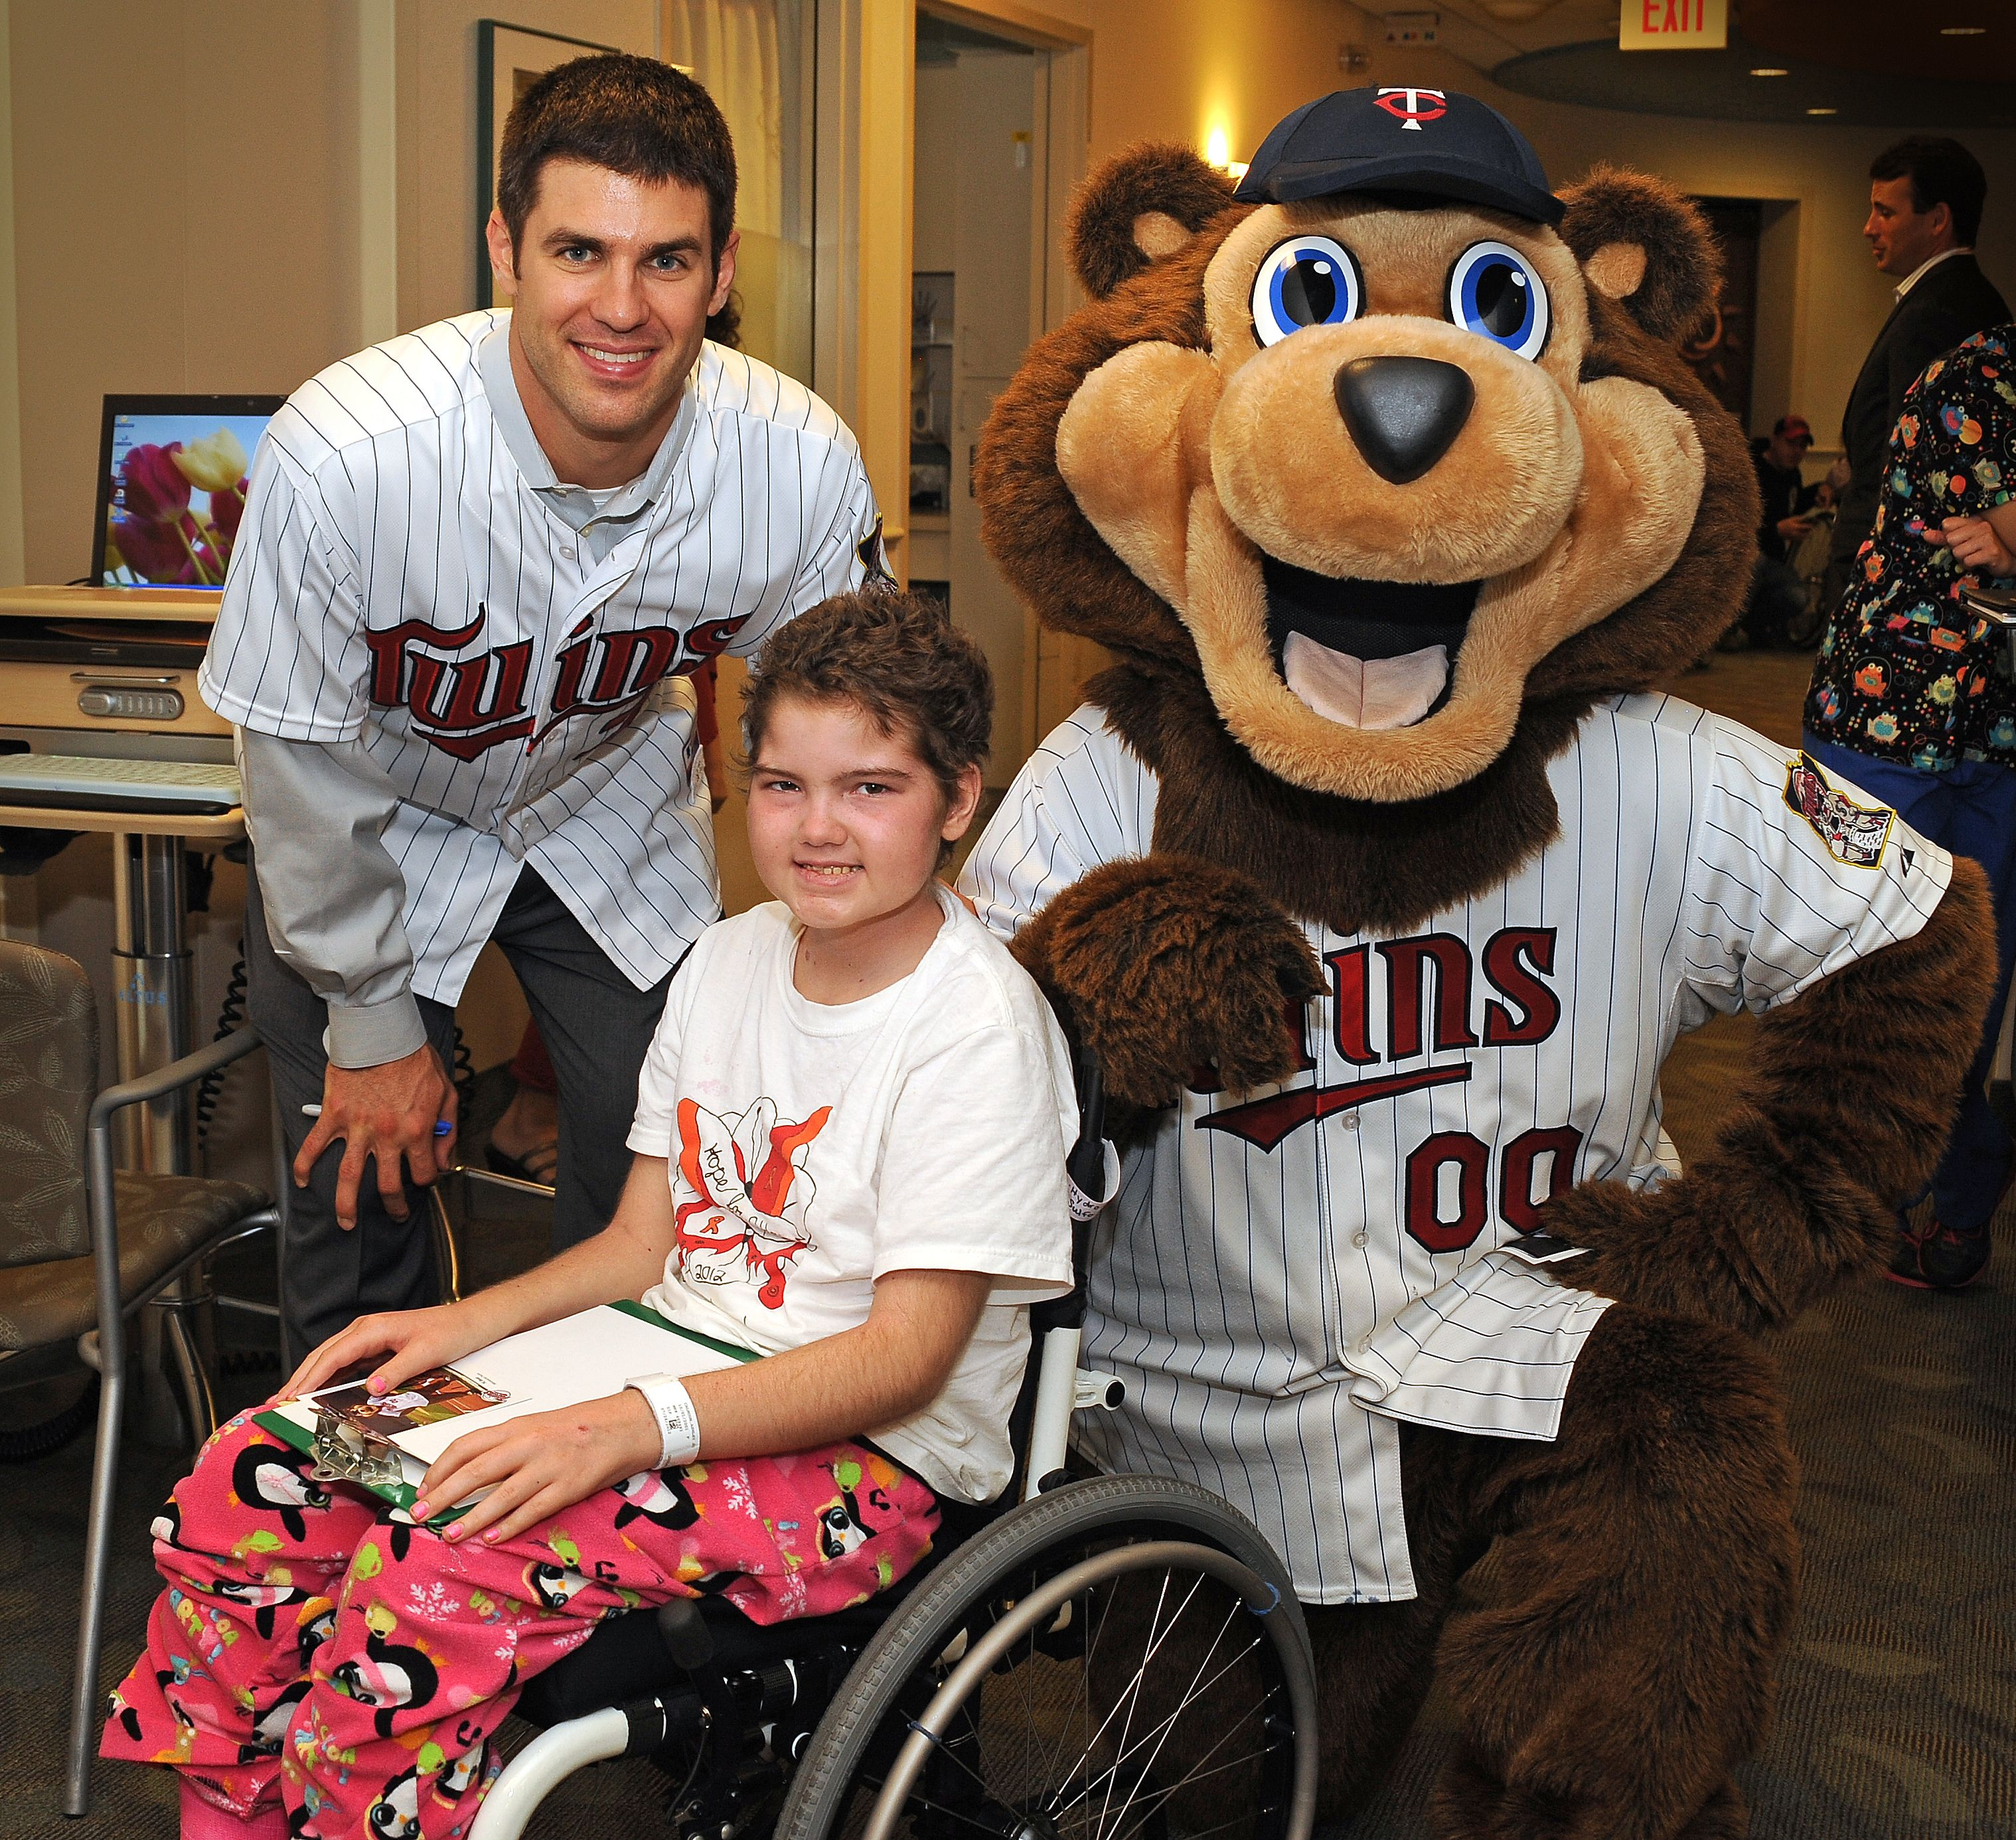 It S Always Exciting When Minnesota Twins Player Joe